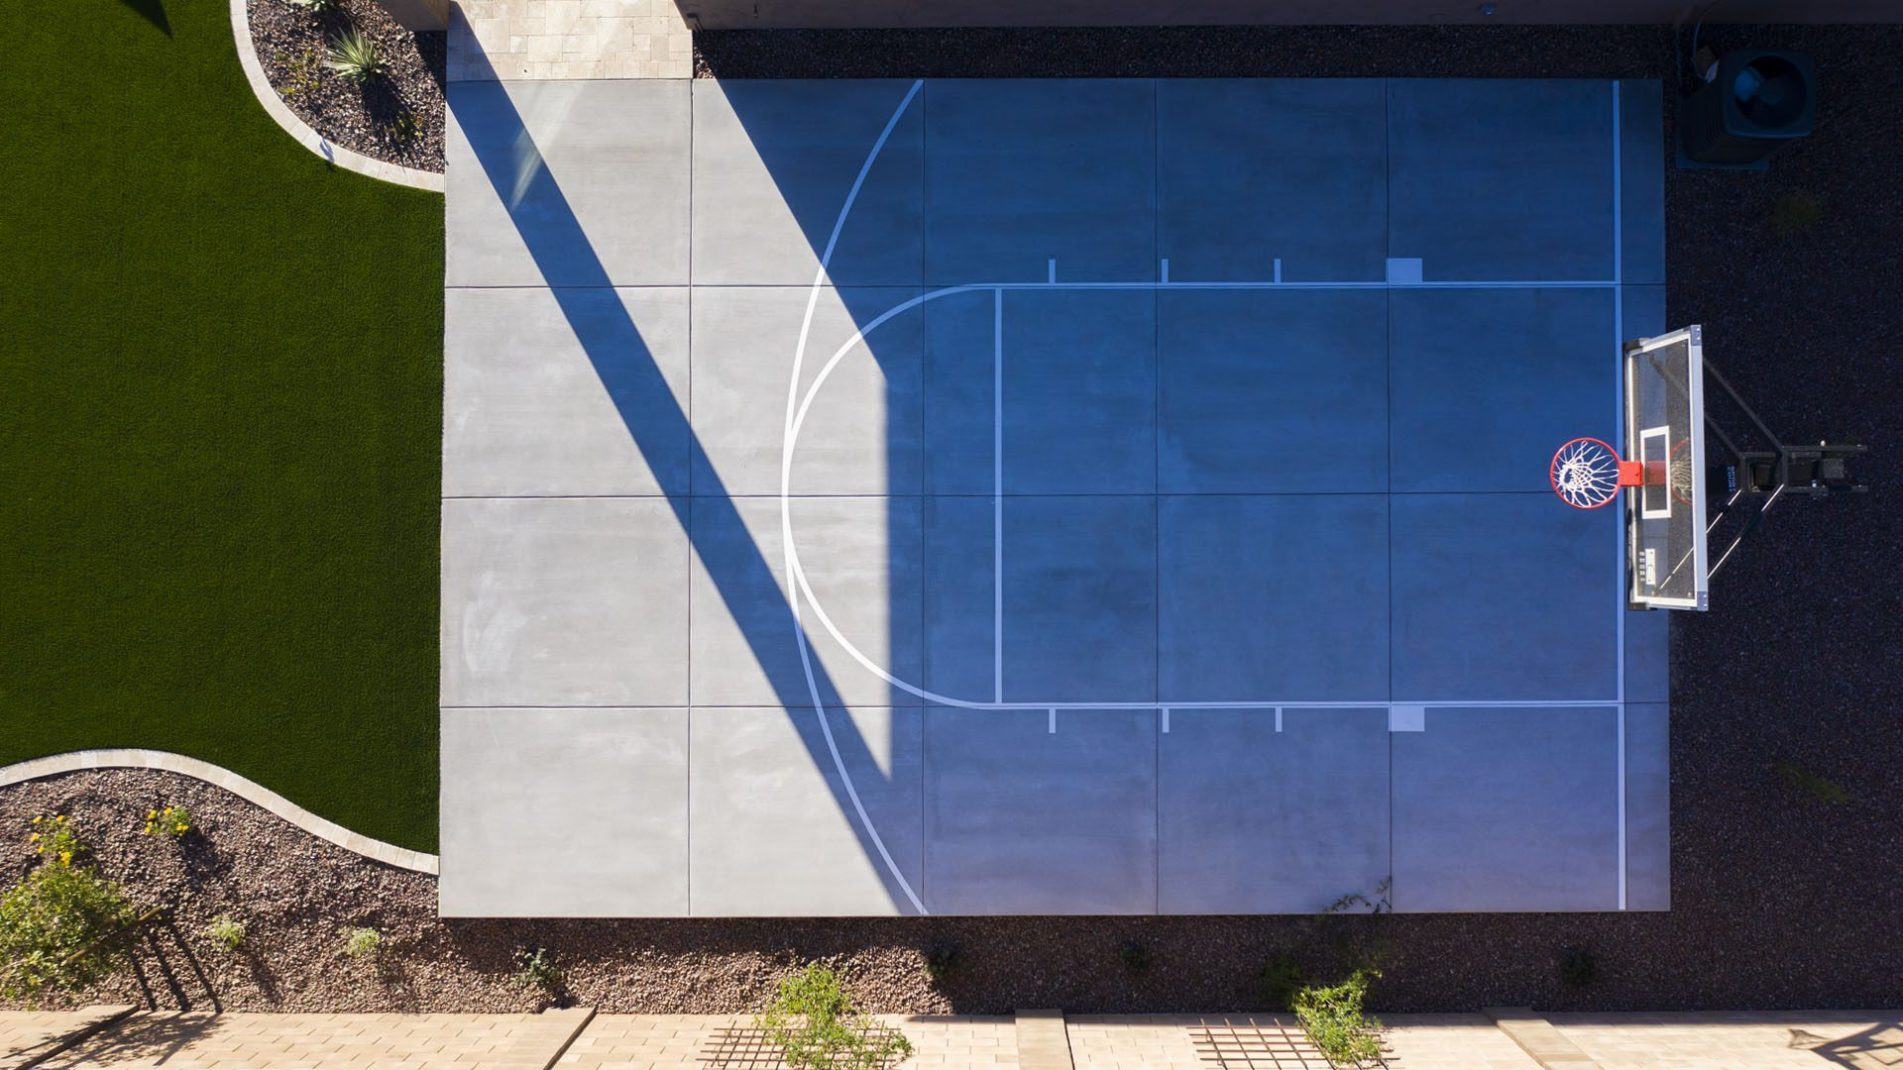 Pool Point Of View - Sedella Spa & Sport Basketball Half Court